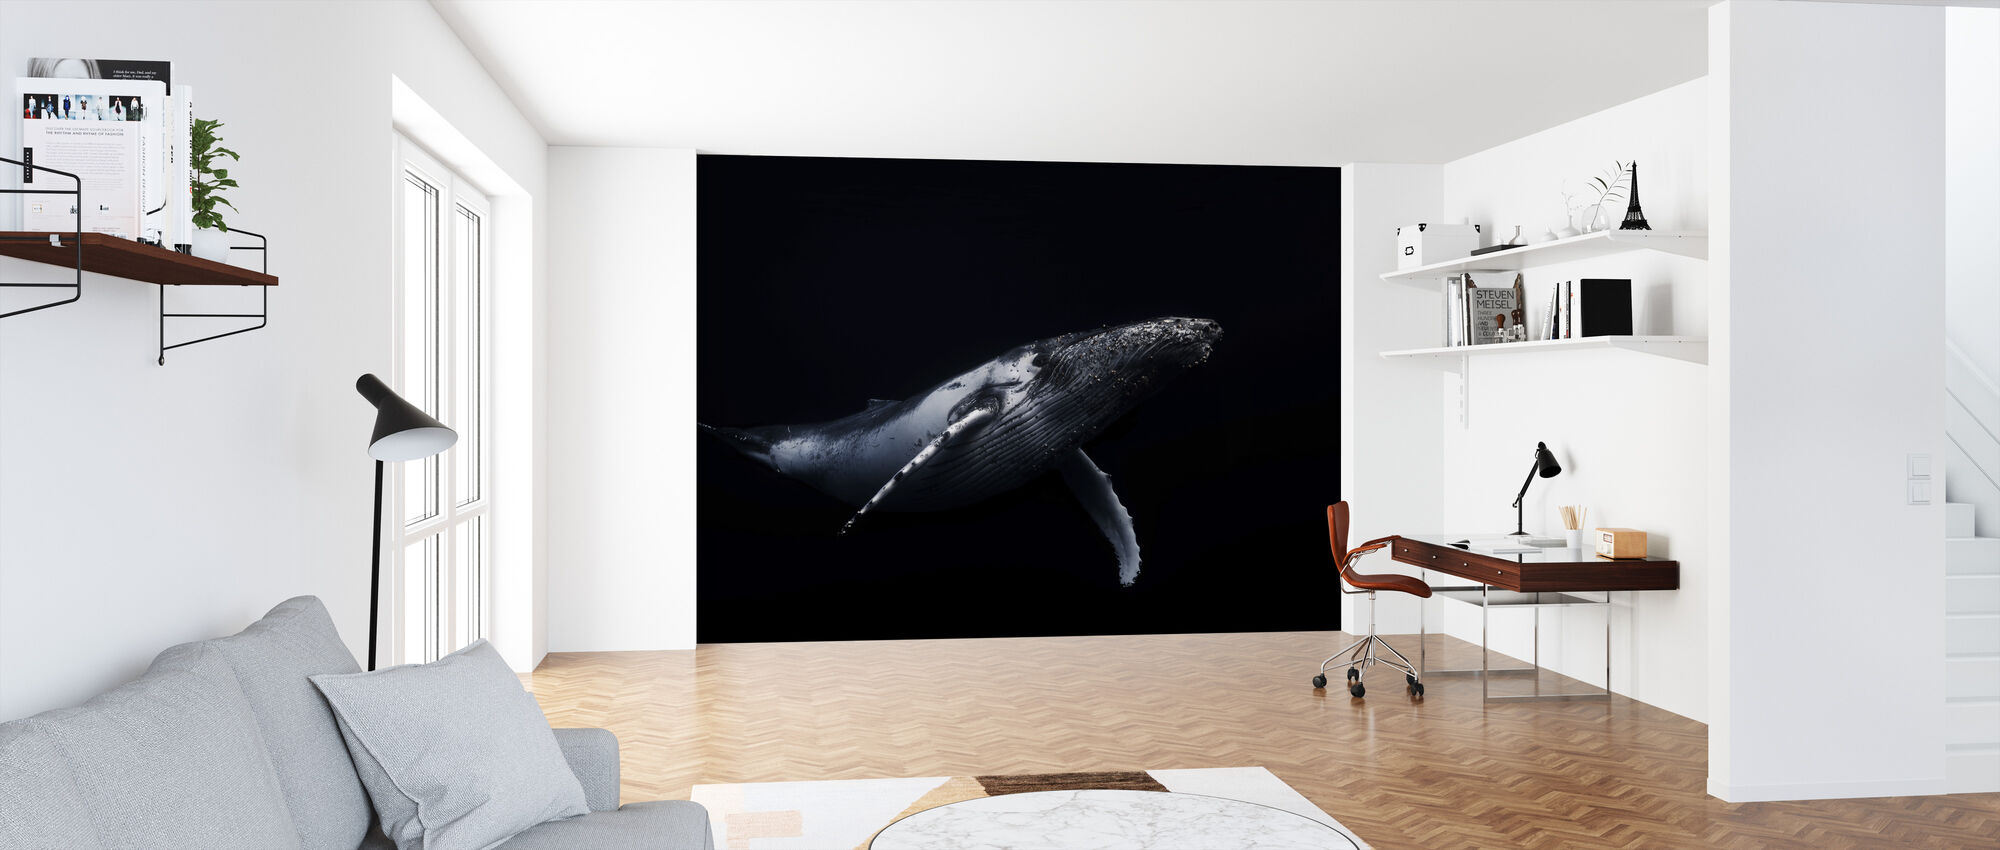 Black and Whale - Wallpaper - Office